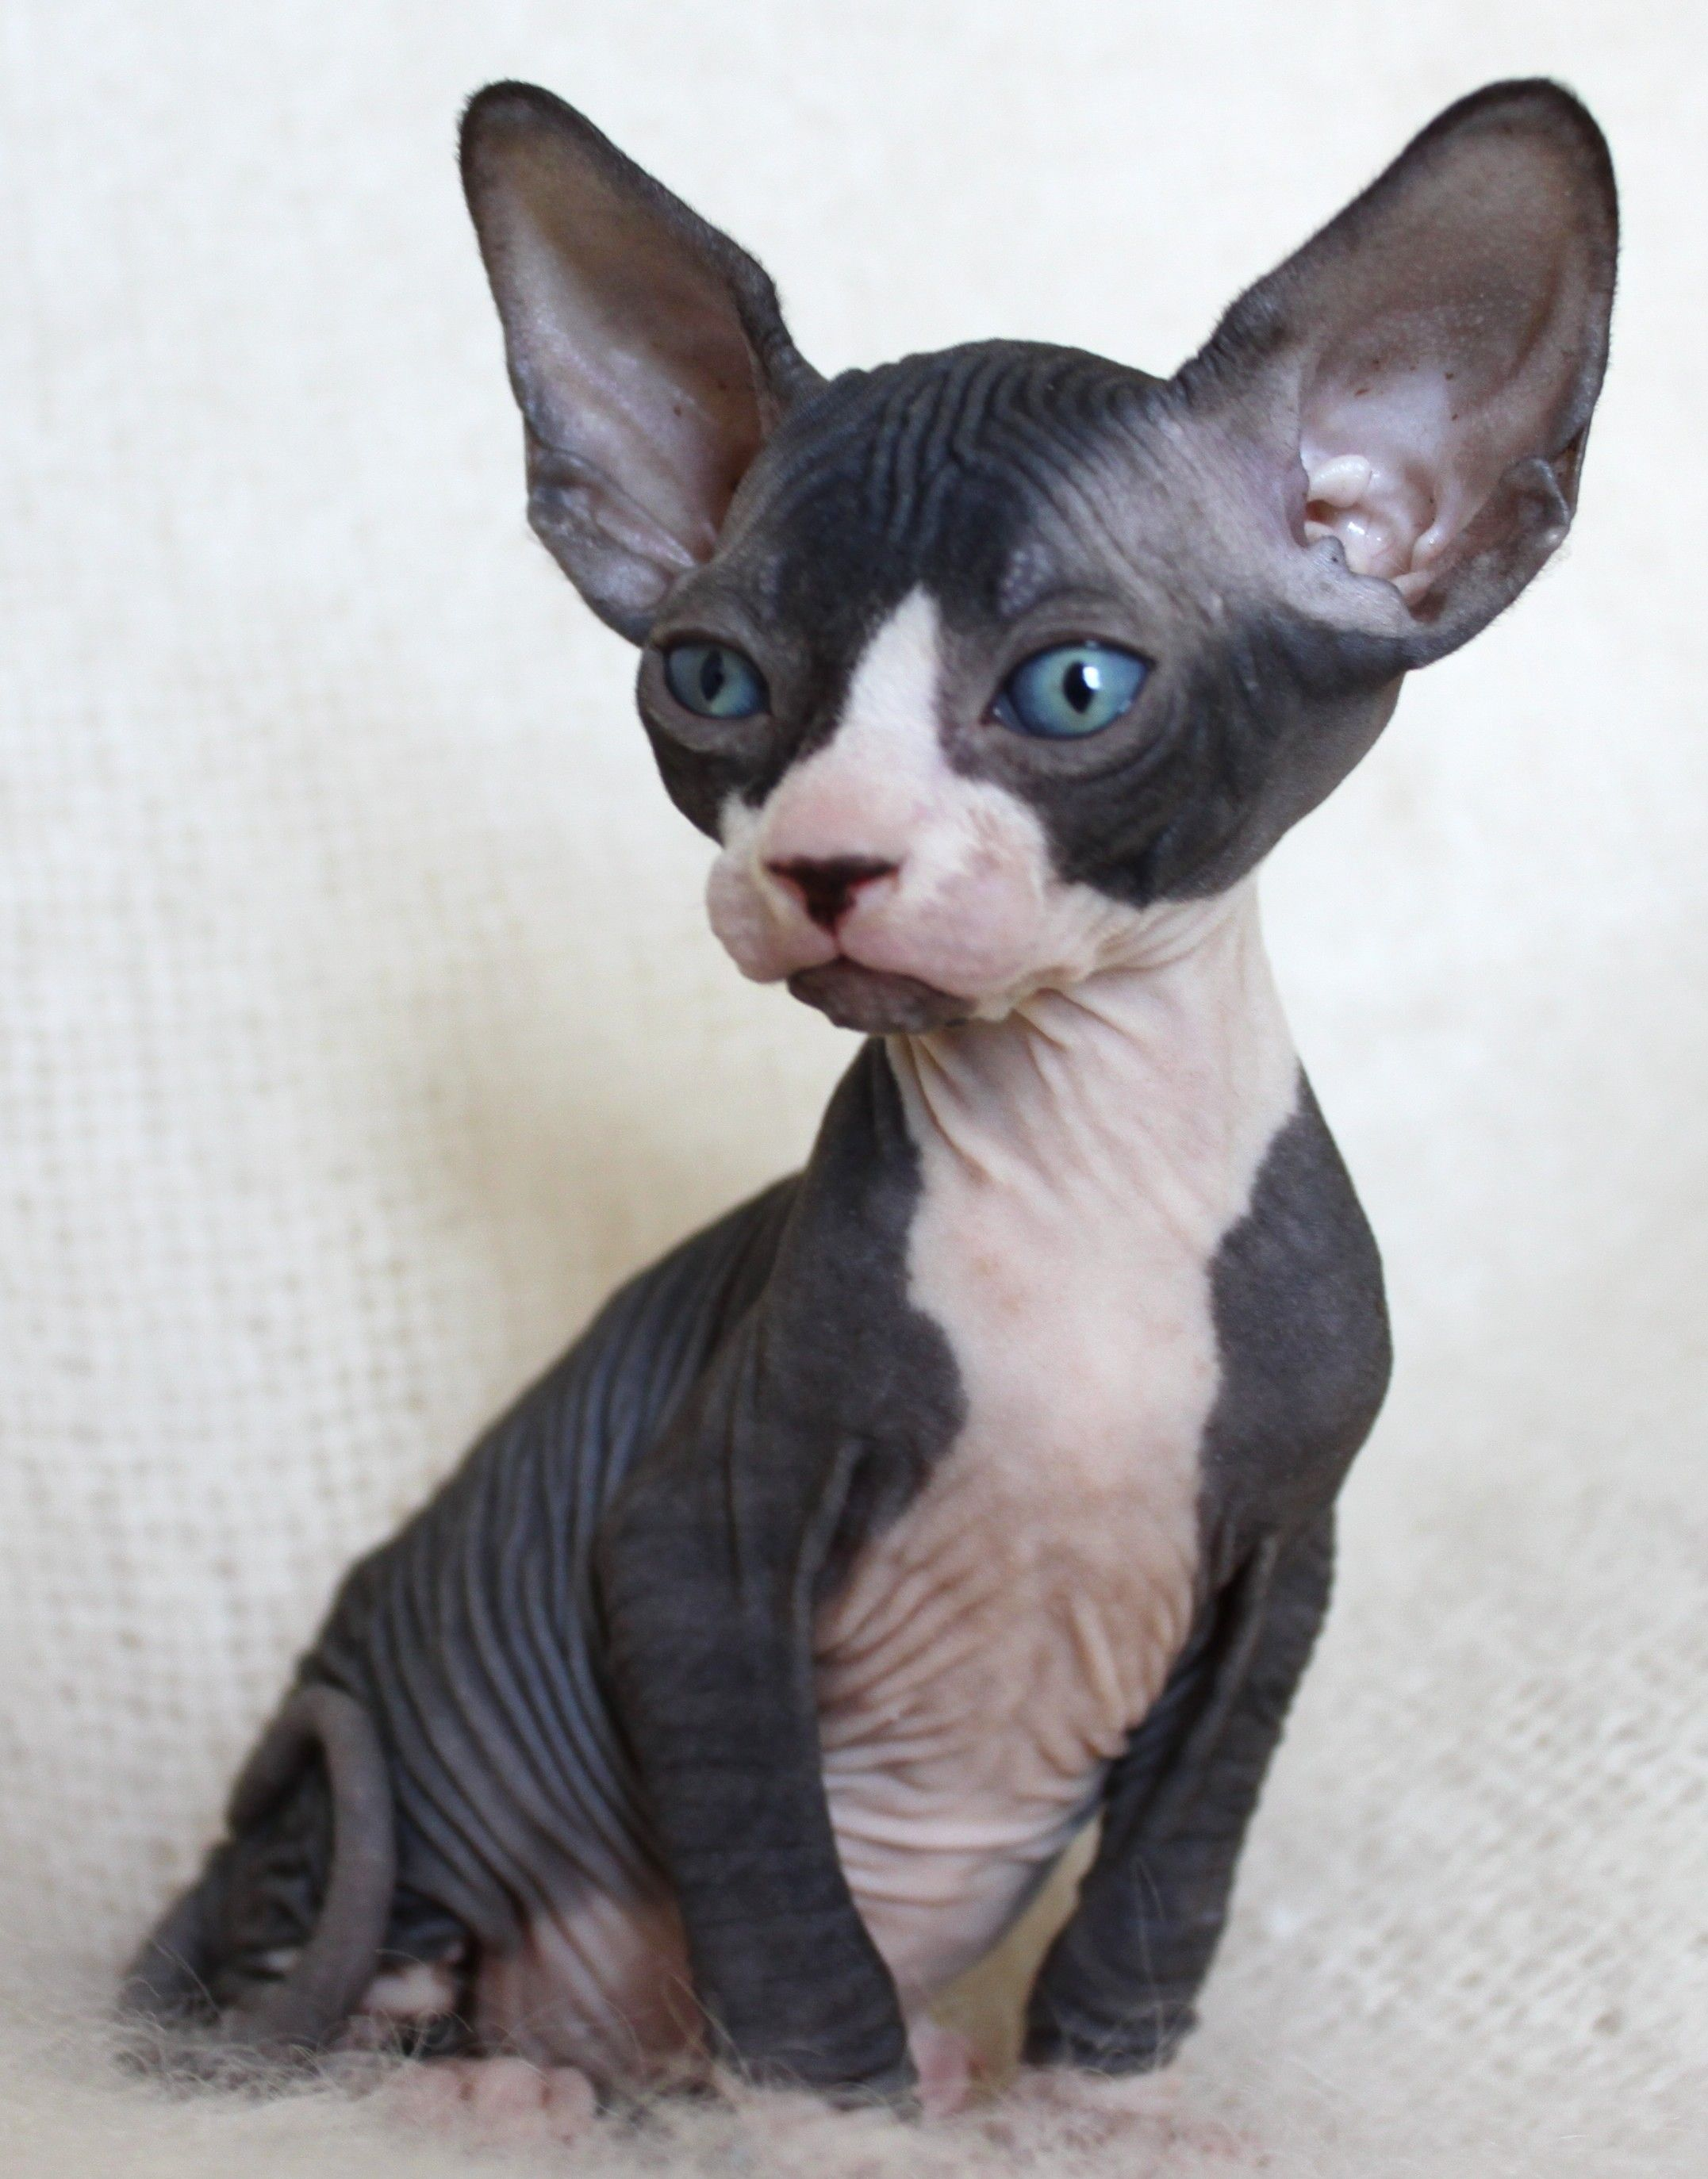 Black Hairless Cats Picture Gallery Imagefiesta Com Sphynxcat Hairless Cat Black Hairless Cat Hairless Cat Sphynx